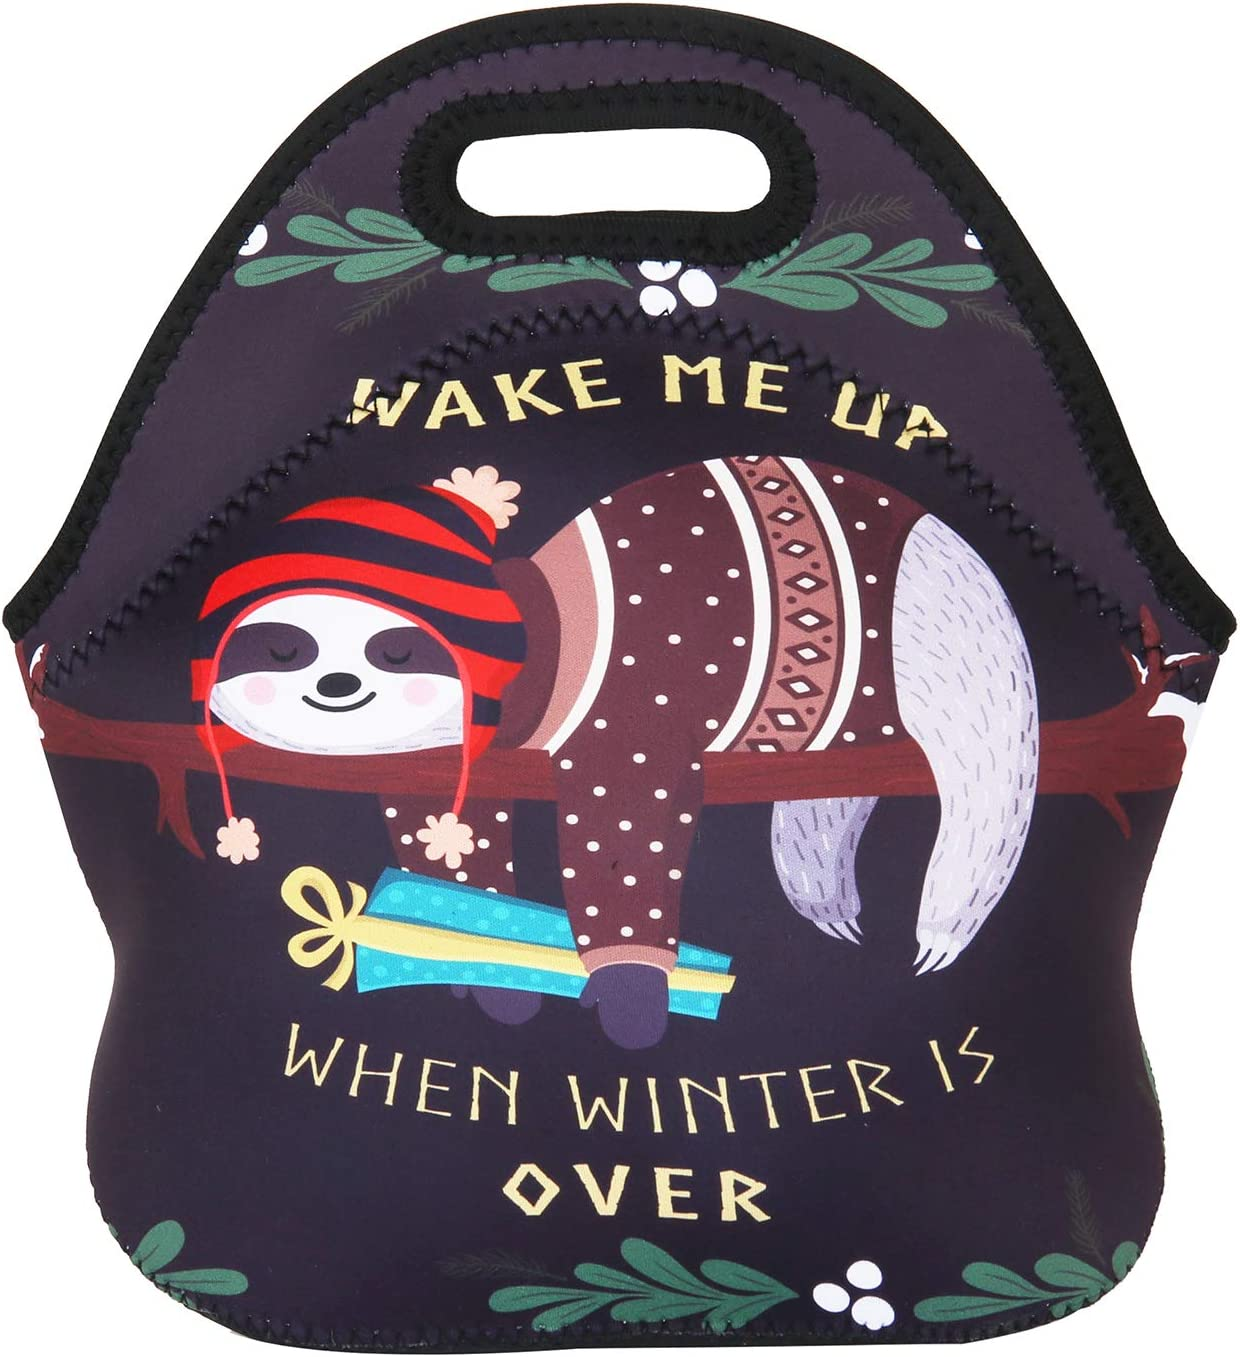 Violet Mist New Cartoon Insulated Neoprene Large Lunch Bag Tote Outdoor Picnic Handbag School Office Food Container for Women Men Kids Adults (Black Sloth)